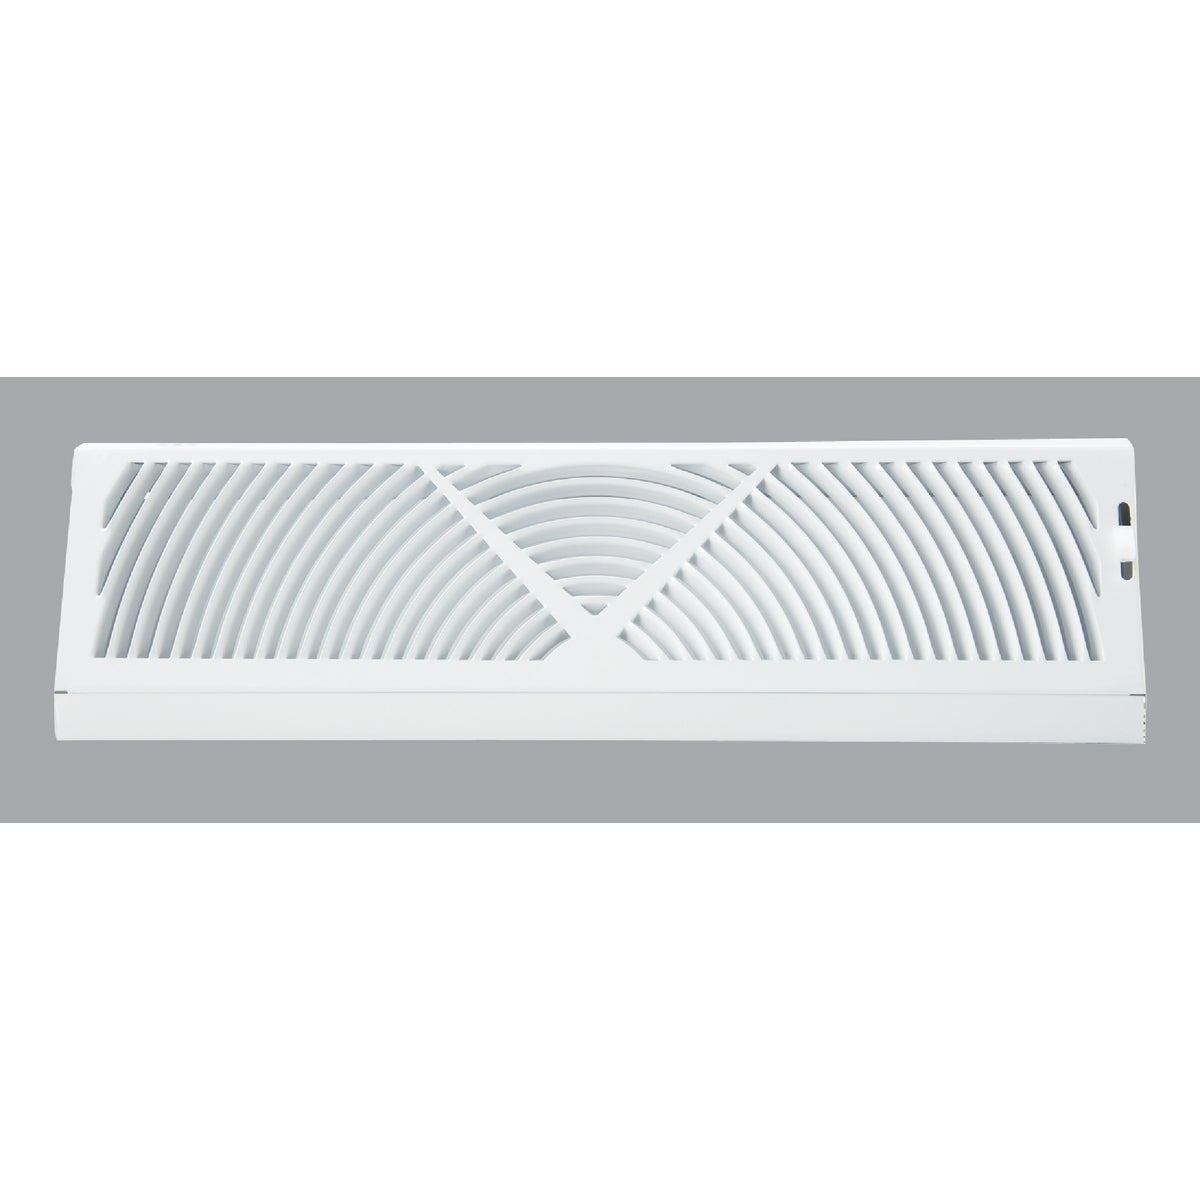 "18""WH BASEBOARD DIFFUSER - 1BB1800WH by Do it Best"